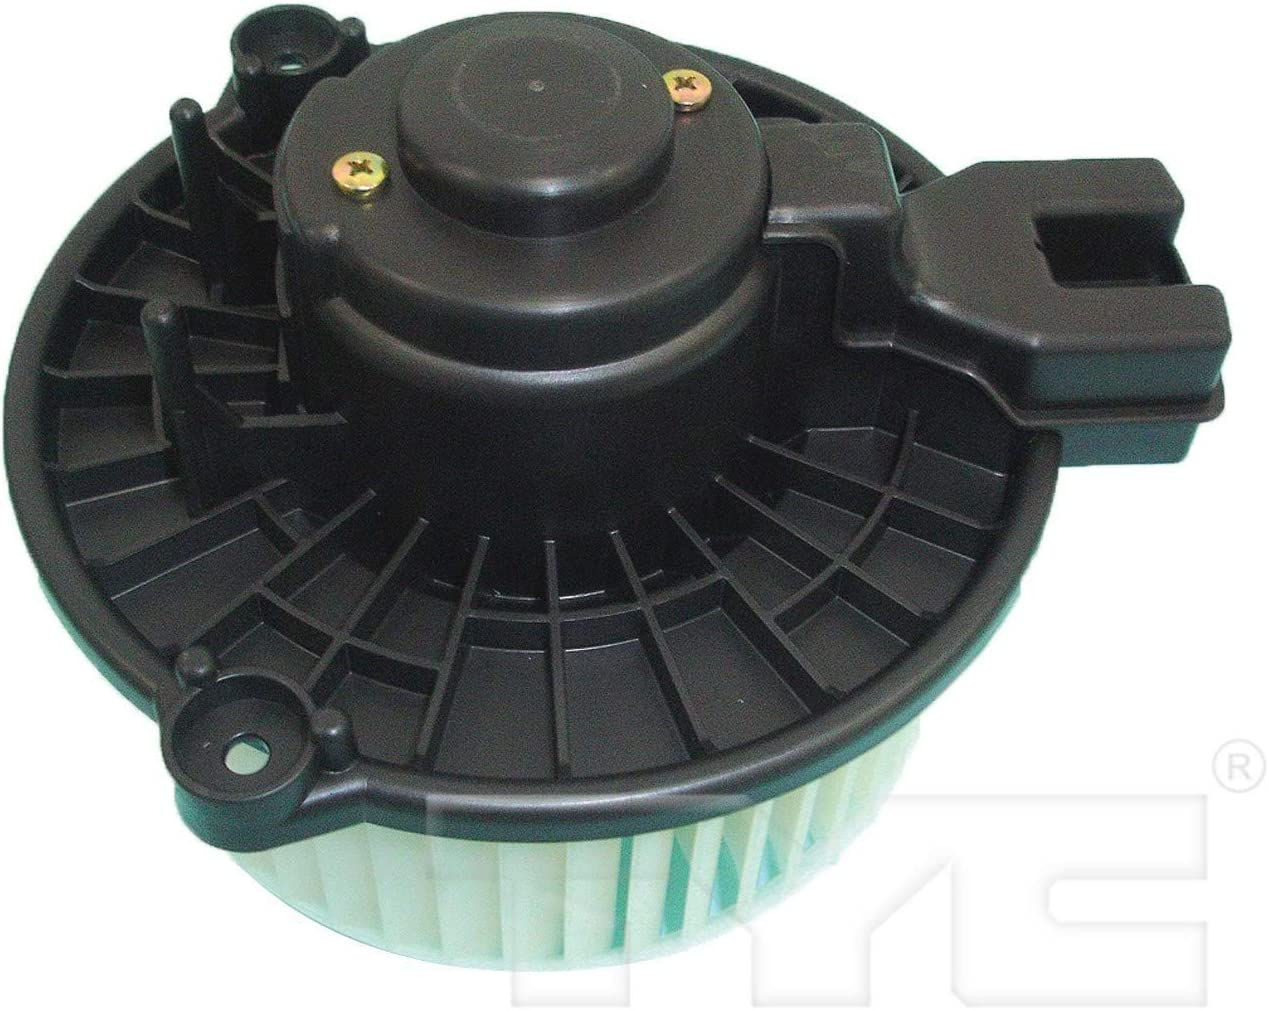 Front HVAC Blower Motor For 2009 Honda Fit Premium Quanlity With One Year Warranty TYC